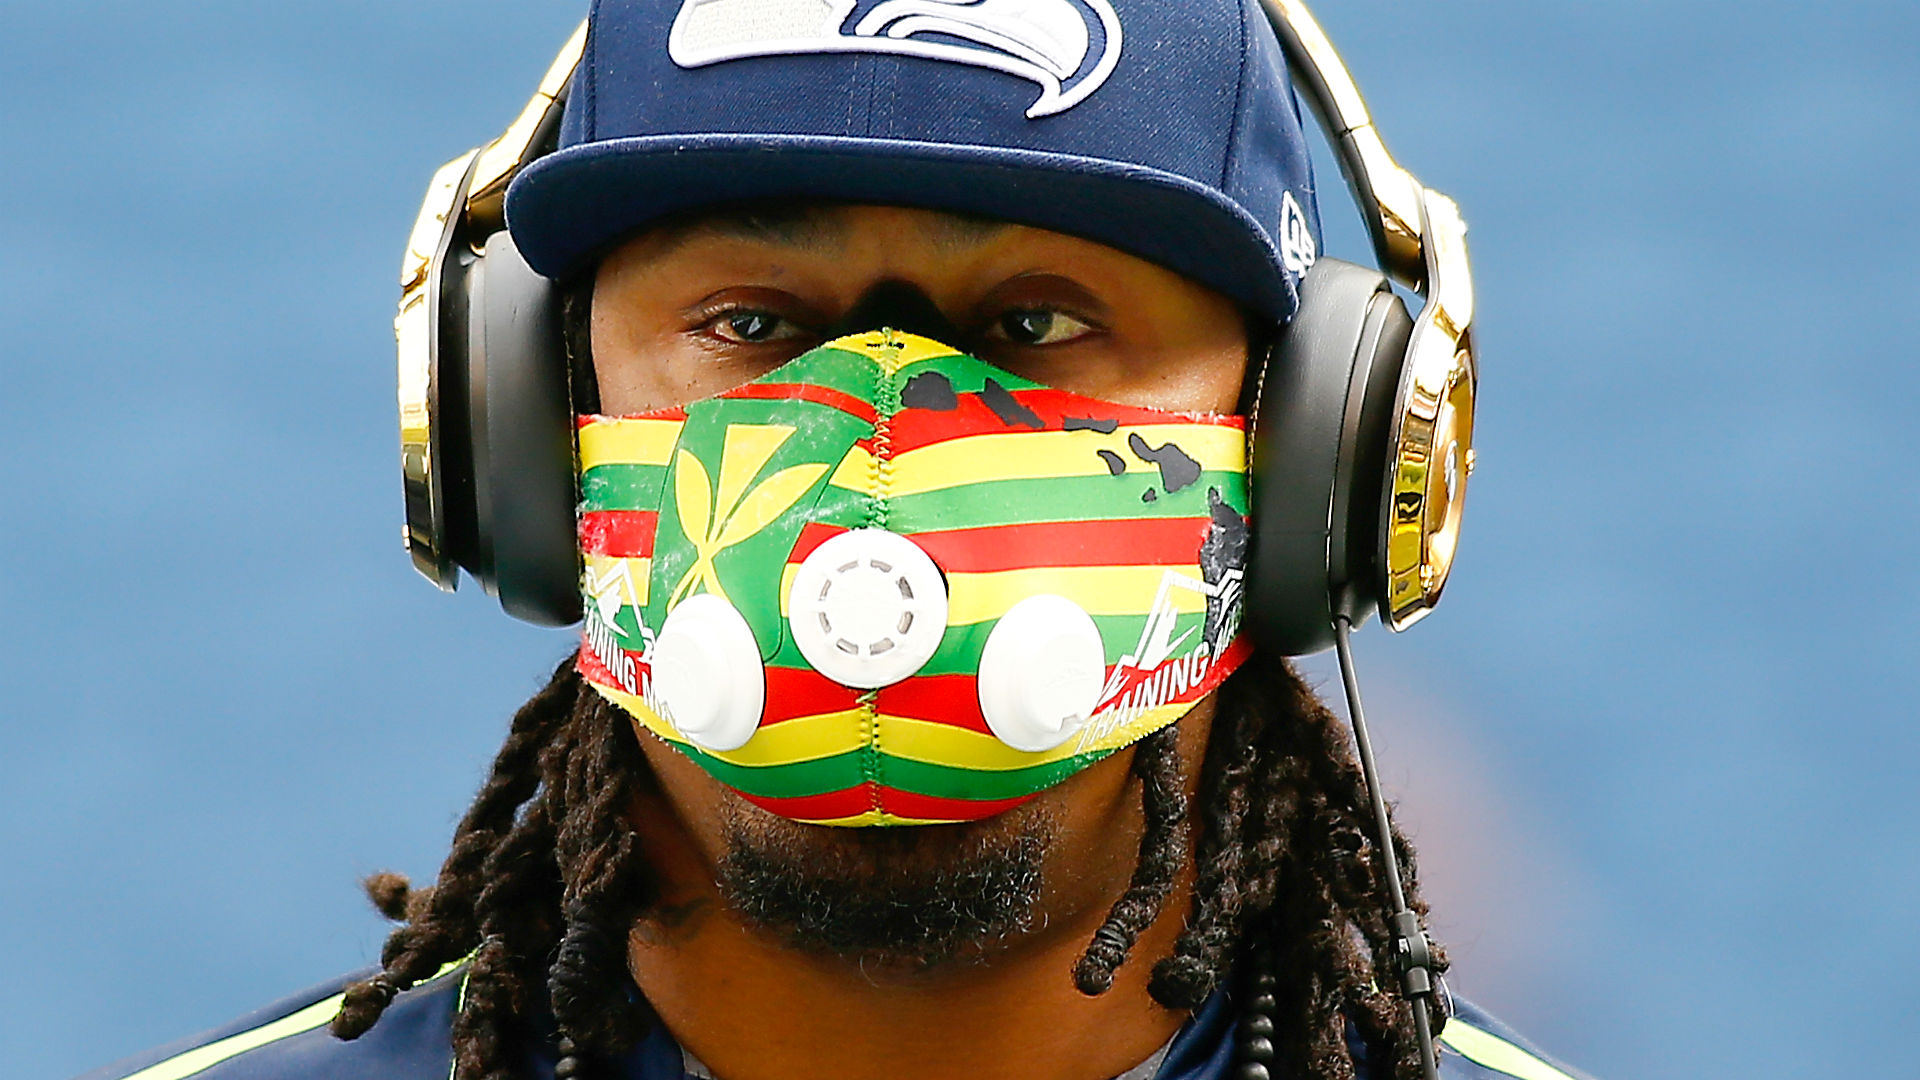 Marshawn Lynch Buys 1 000 Cleats For Packers Game Sporting News